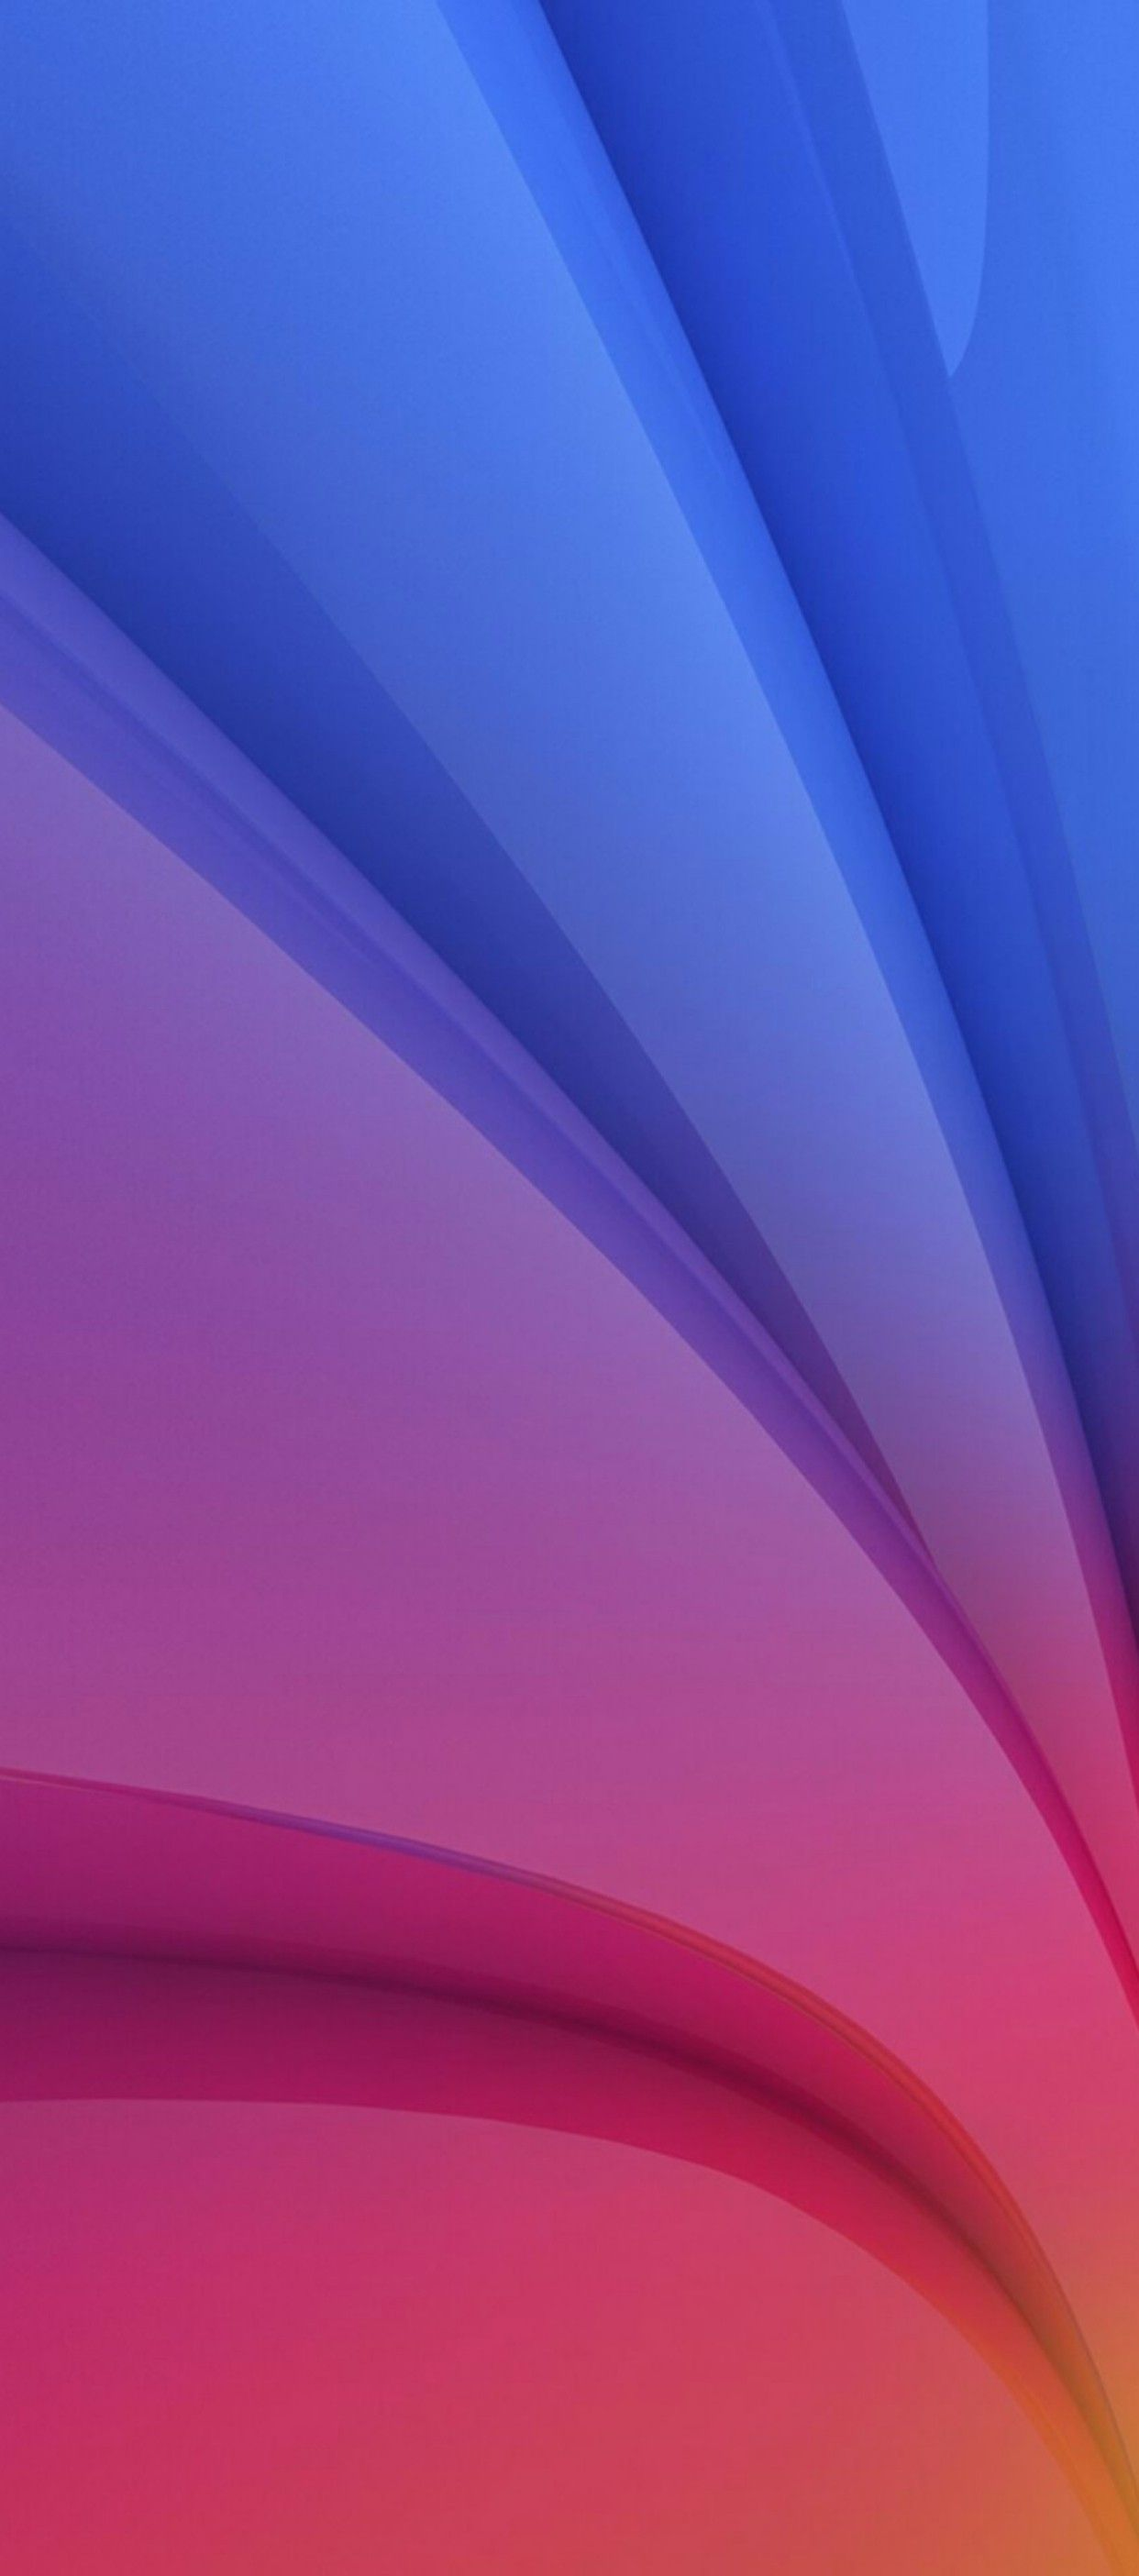 Blue Pink Violet Wallpaper Pattern Galaxy Colour Abstract Digital Art S8 Walls Samsung Abstract Wallpaper Backgrounds Abstract Galaxy S8 Wallpaper